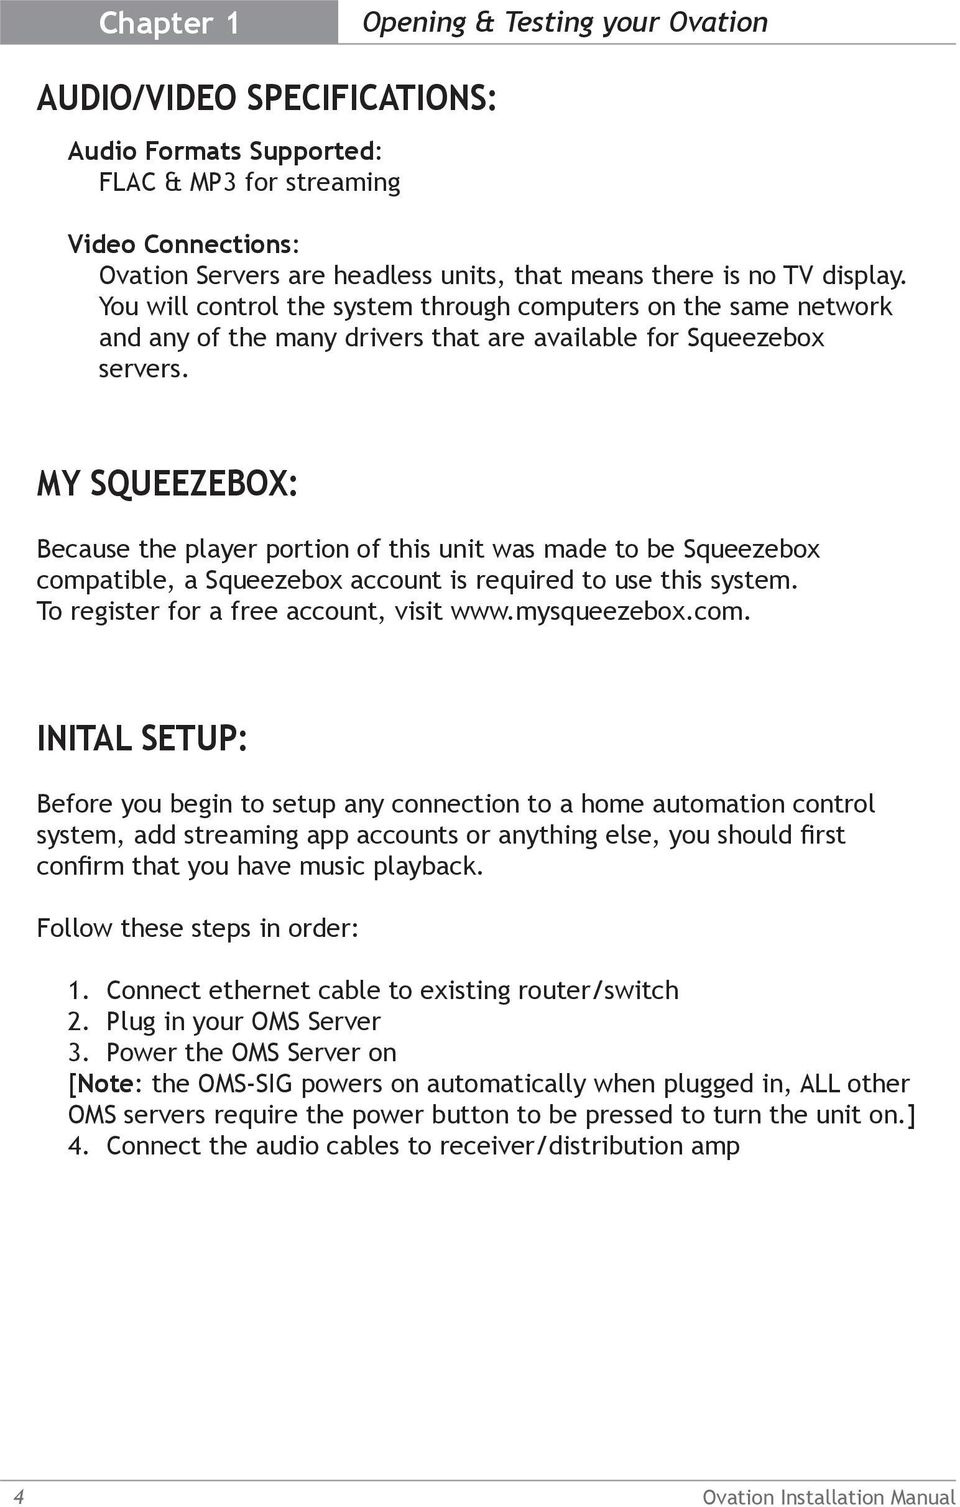 MY SQUEEZEBOX: Because the player portion of this unit was made to be Squeezebox compatible, a Squeezebox account is required to use this system. To register for a free account, visit www.